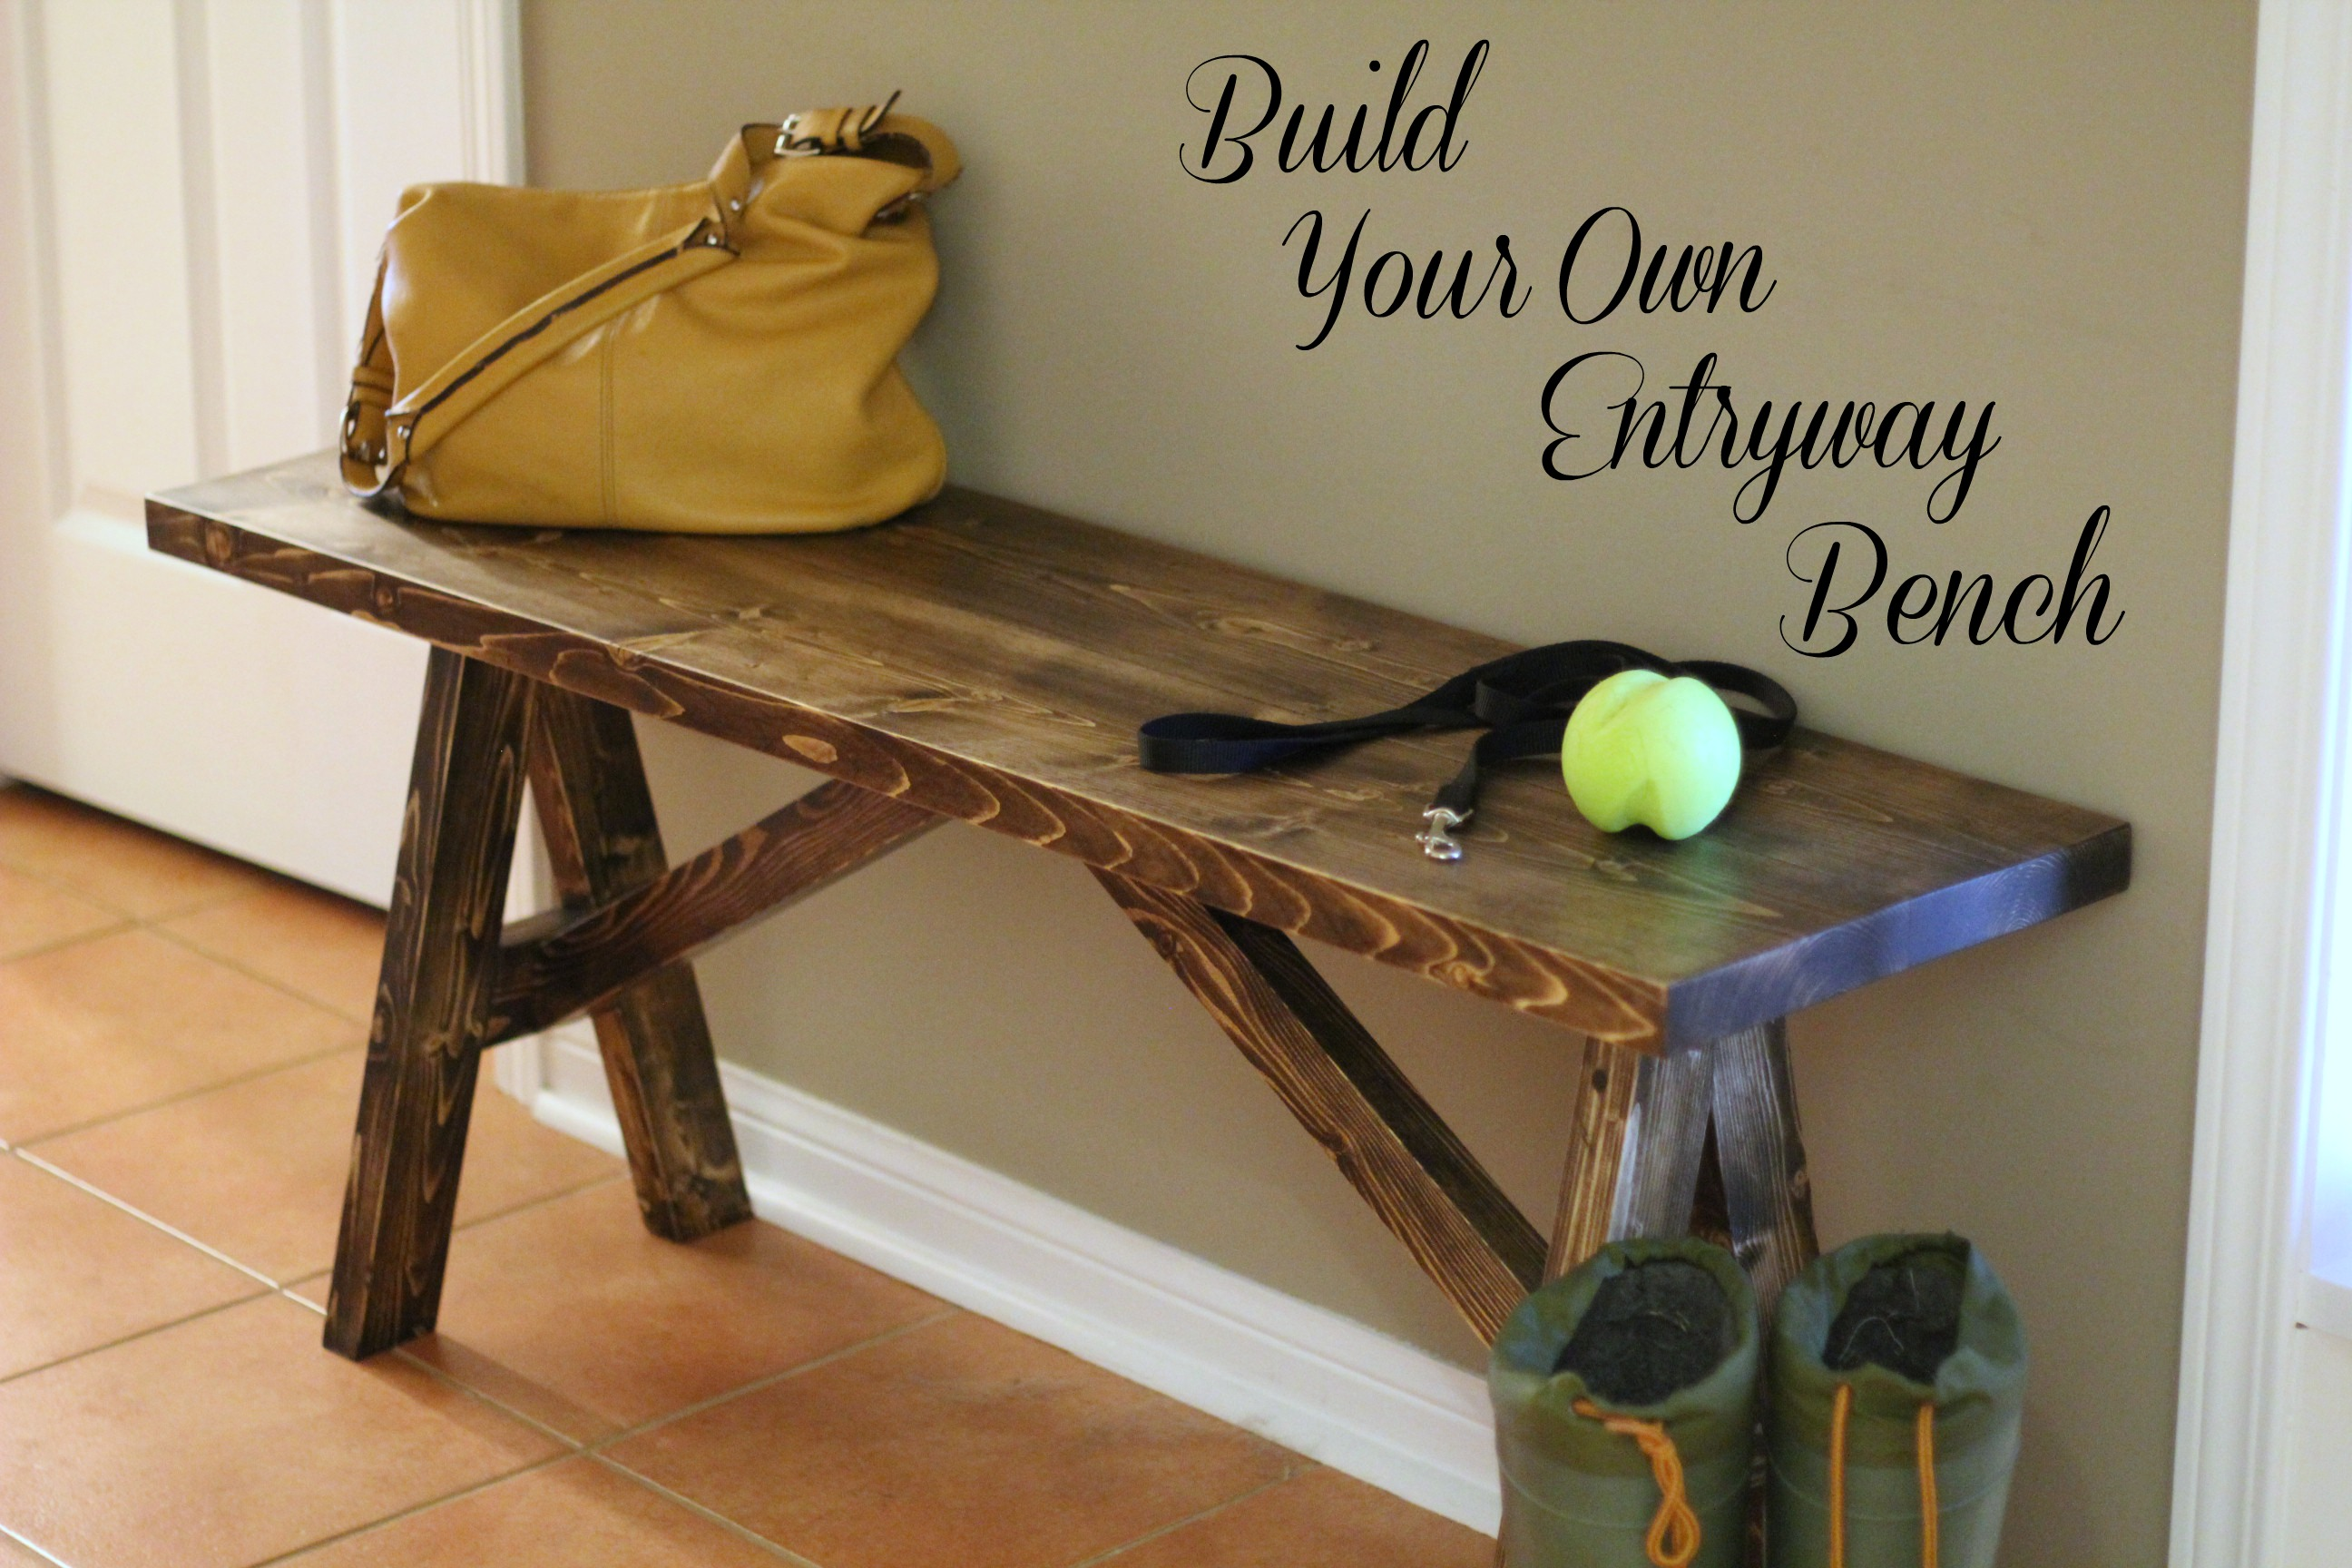 Build Foyer Bench : Turtles and tails build your own entryway bench shelf